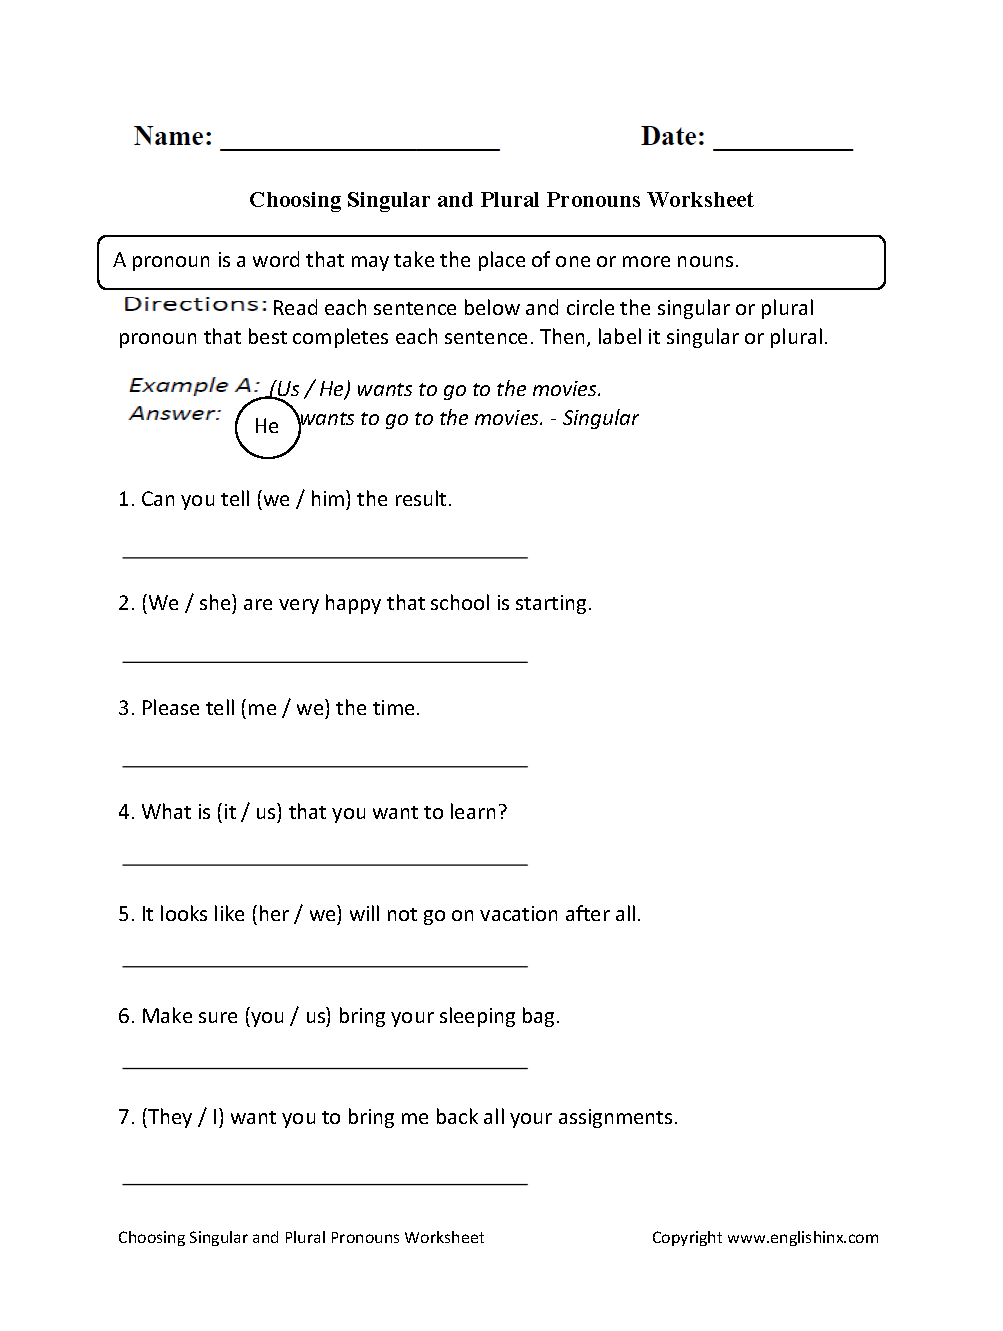 Choosing Singular or Plural Pronouns Worksheet  Grammar  education, multiplication, alphabet worksheets, and grade worksheets Noun And Pronoun Worksheets For Middle School 1331 x 1003